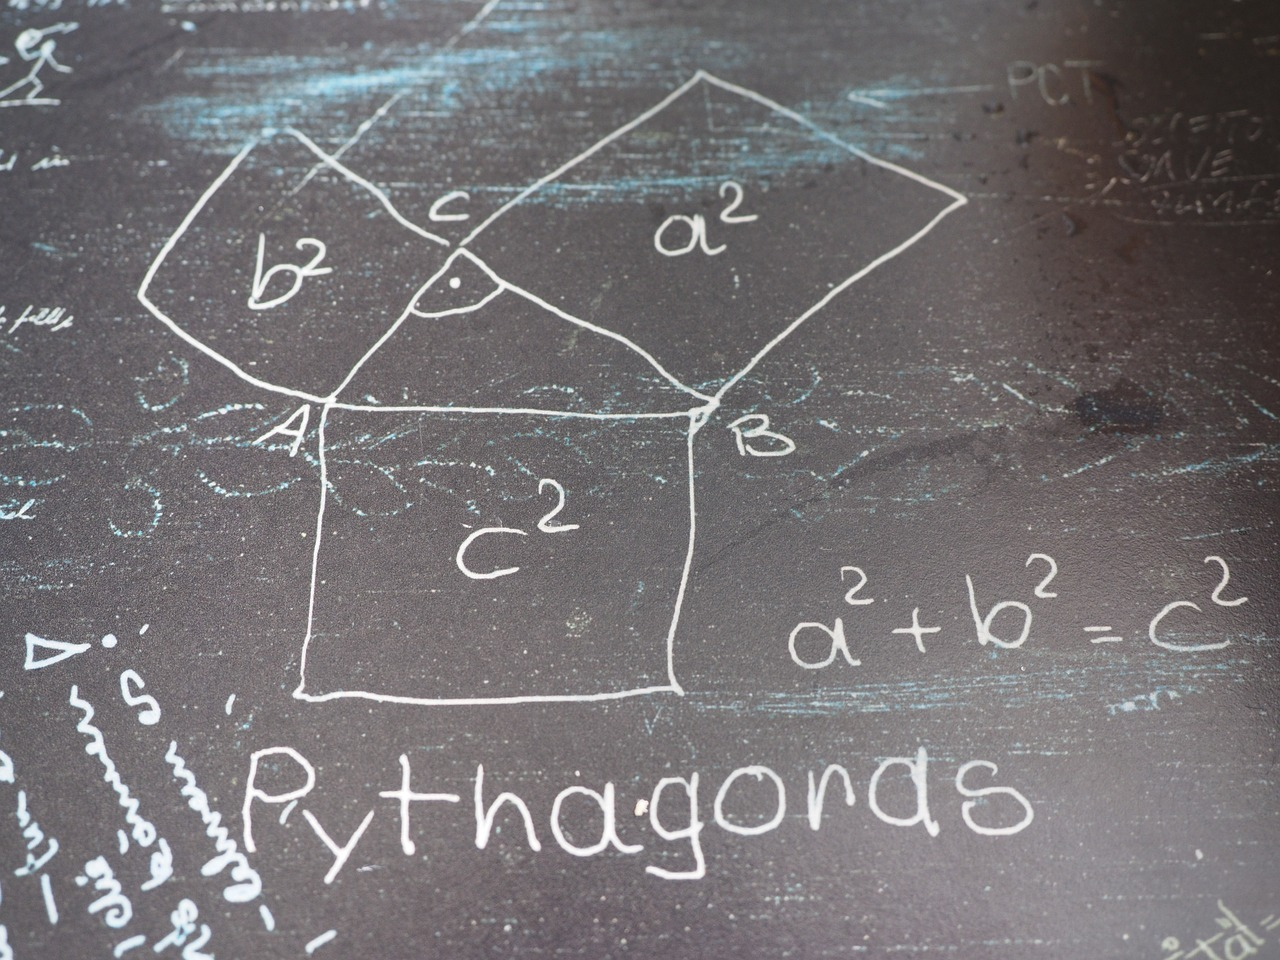 pythagoras,mathematics,formal,triangle,square root,at right angles,hypotenuse,equation,angle,graphic,square,geometry,learn,board,chalk,school,free pictures, free photos, free images, royalty free, free illustrations, public domain